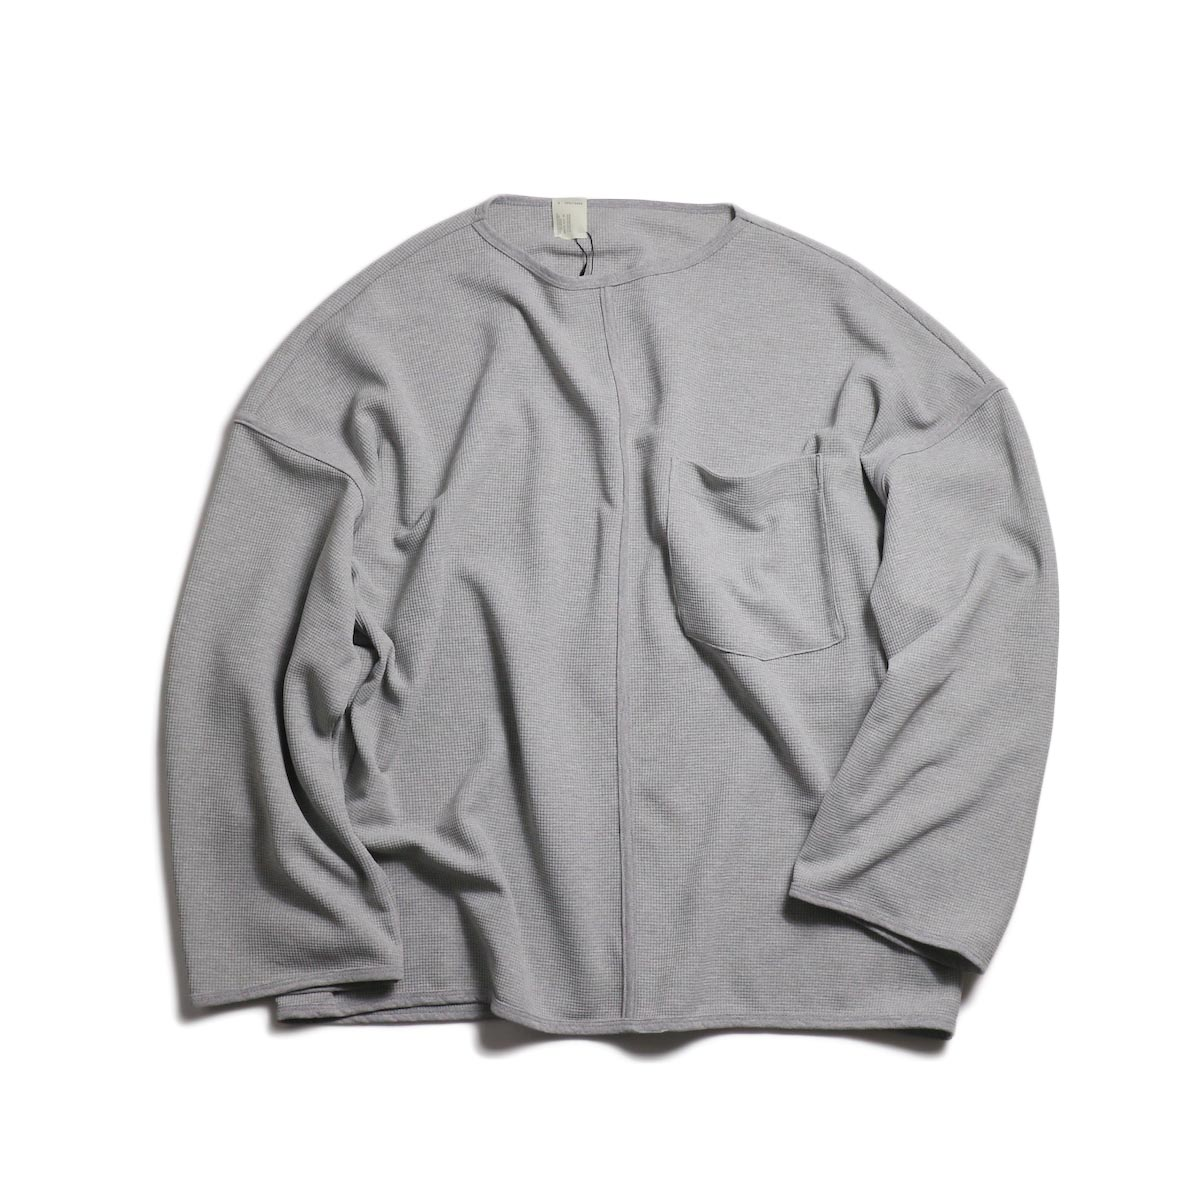 N.HOOLYWOOD / 191-CS13-015-pieces Center Seam LS Tee (Gray)